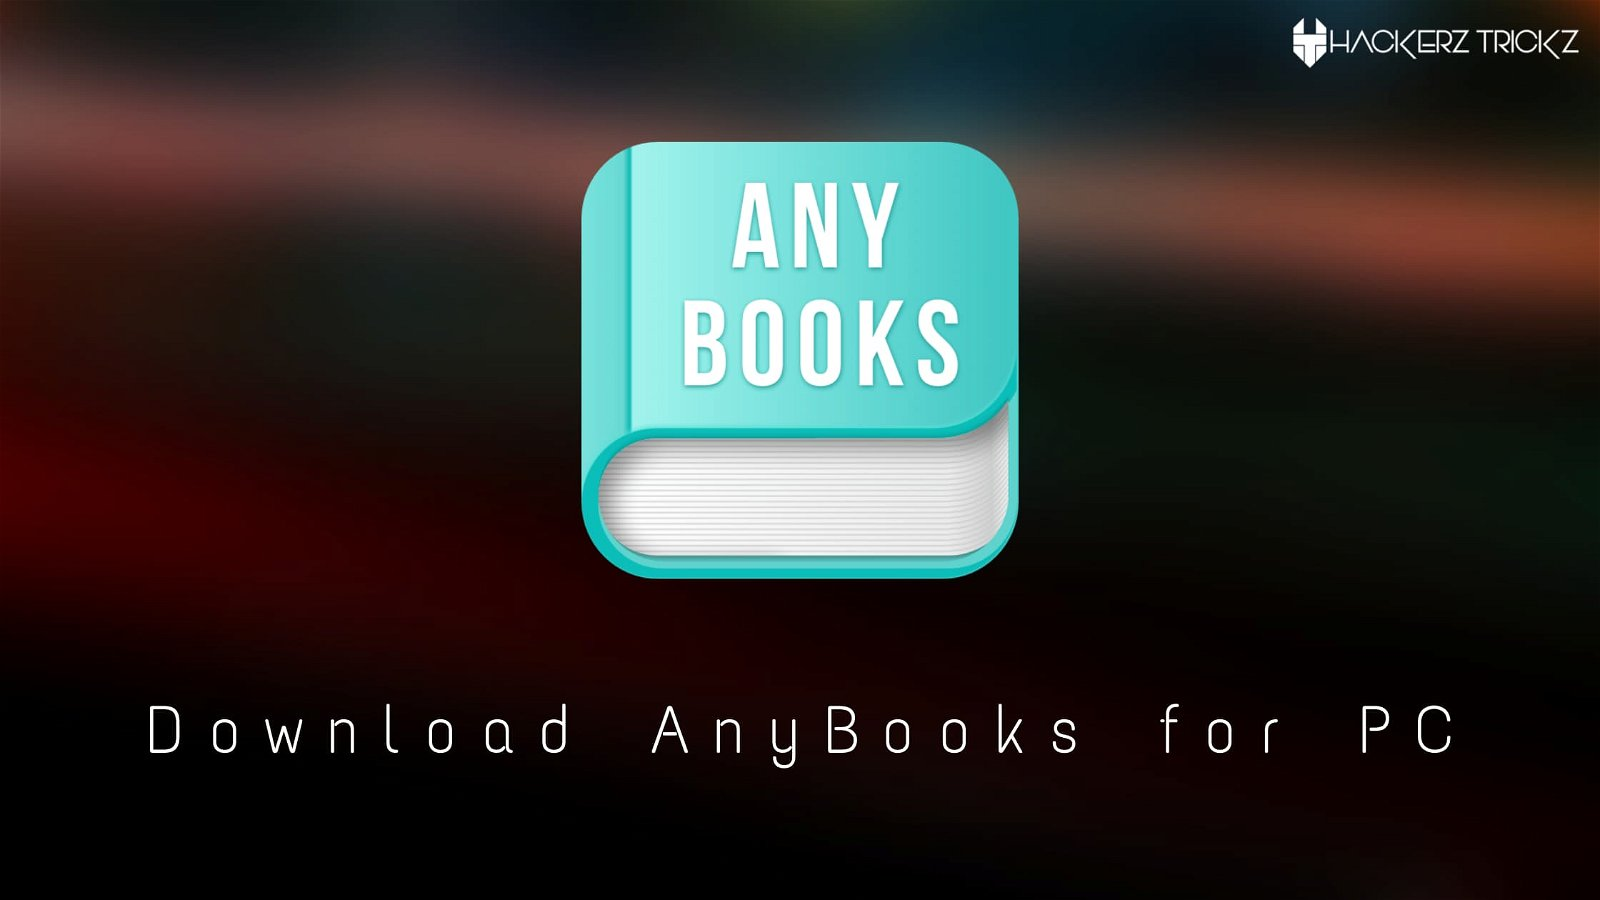 anybooks for pc download